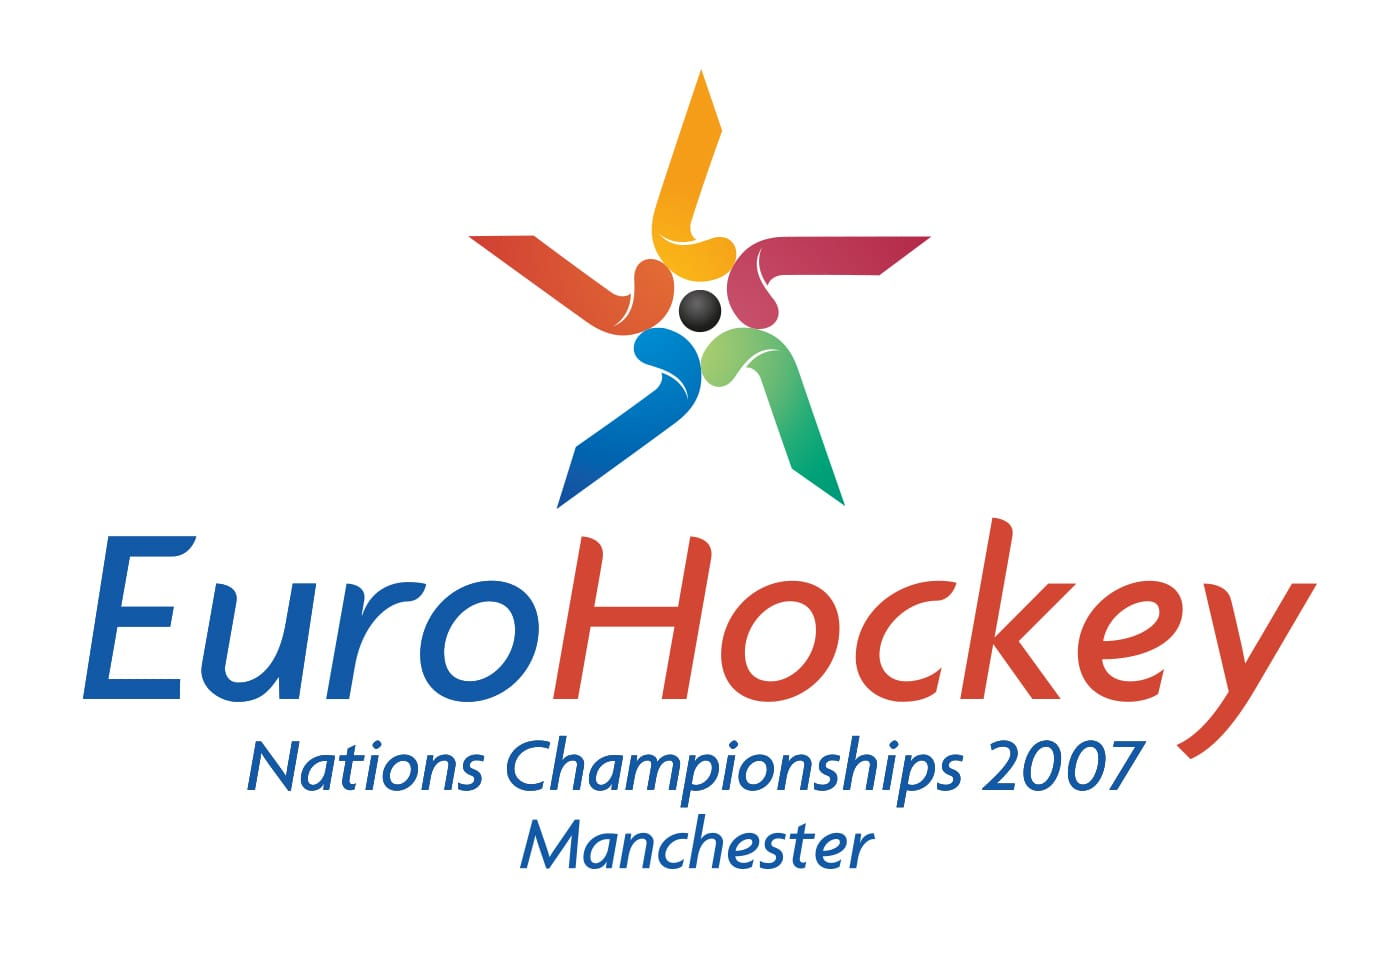 Event branding for an international hockey event hosted by England Hockey on behalf of the international federation.